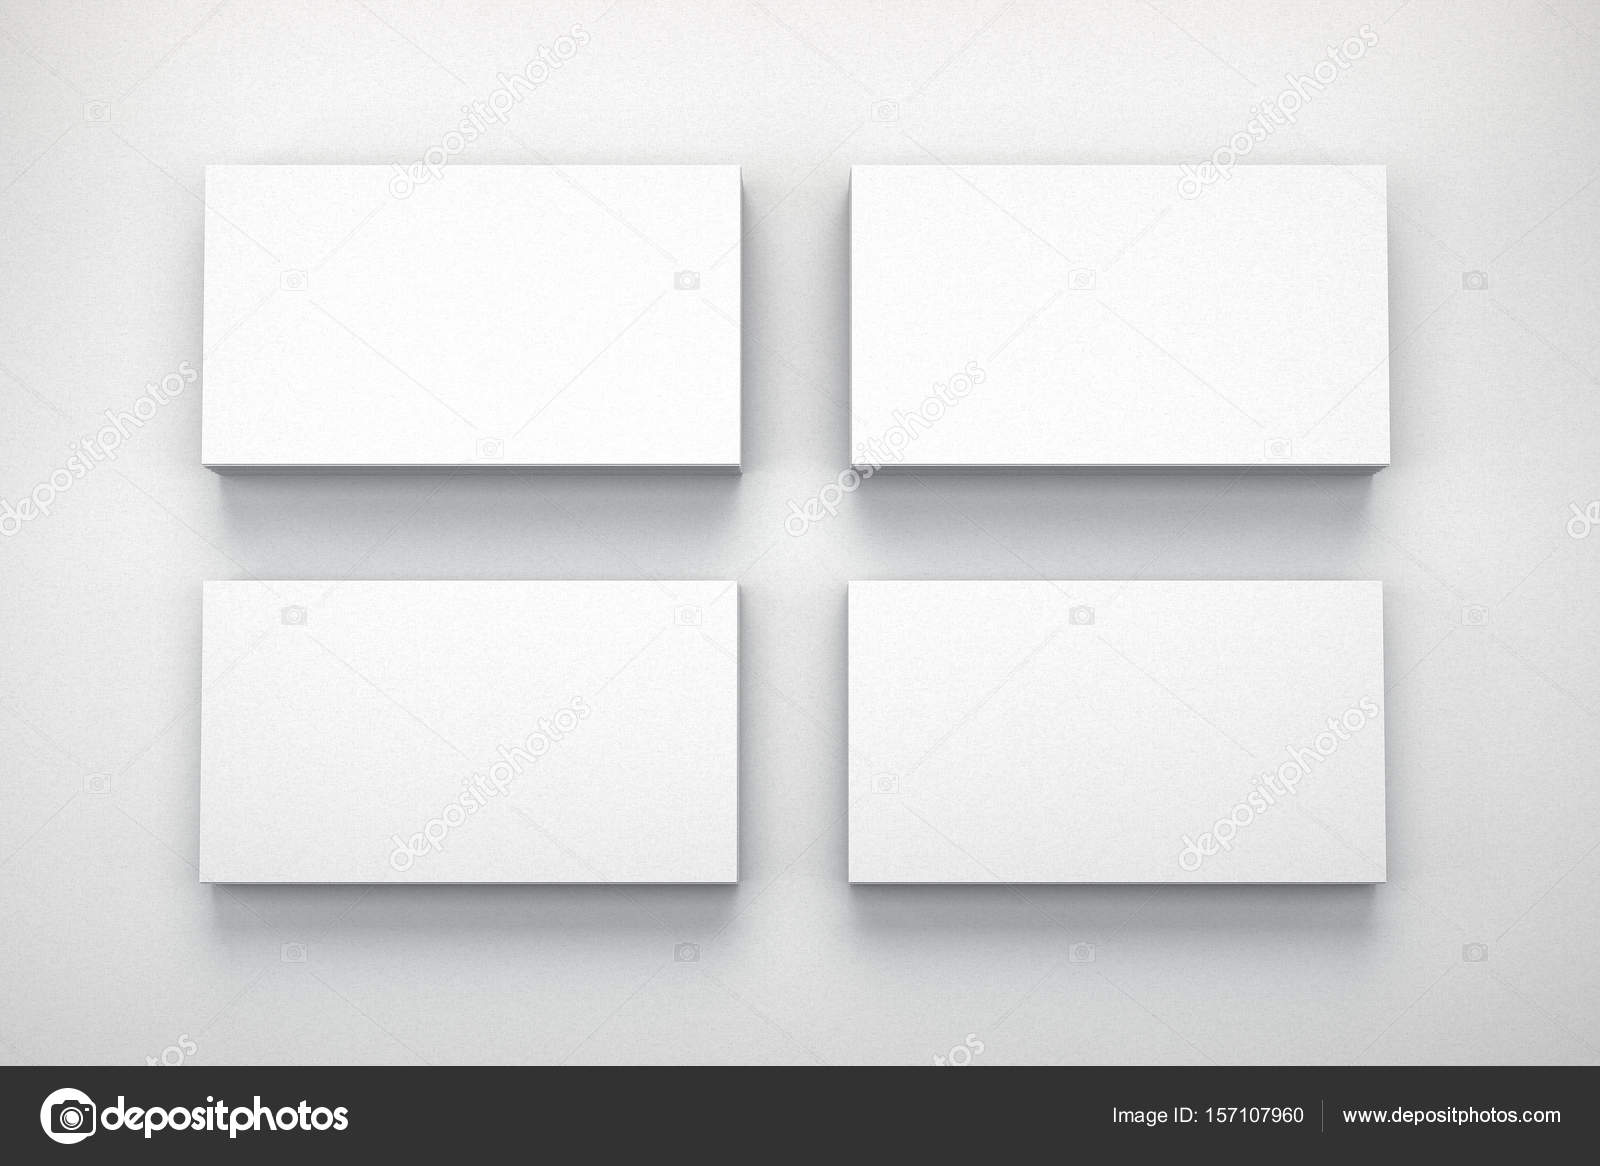 Mockup of four business cards on white textured paper studio. High ...